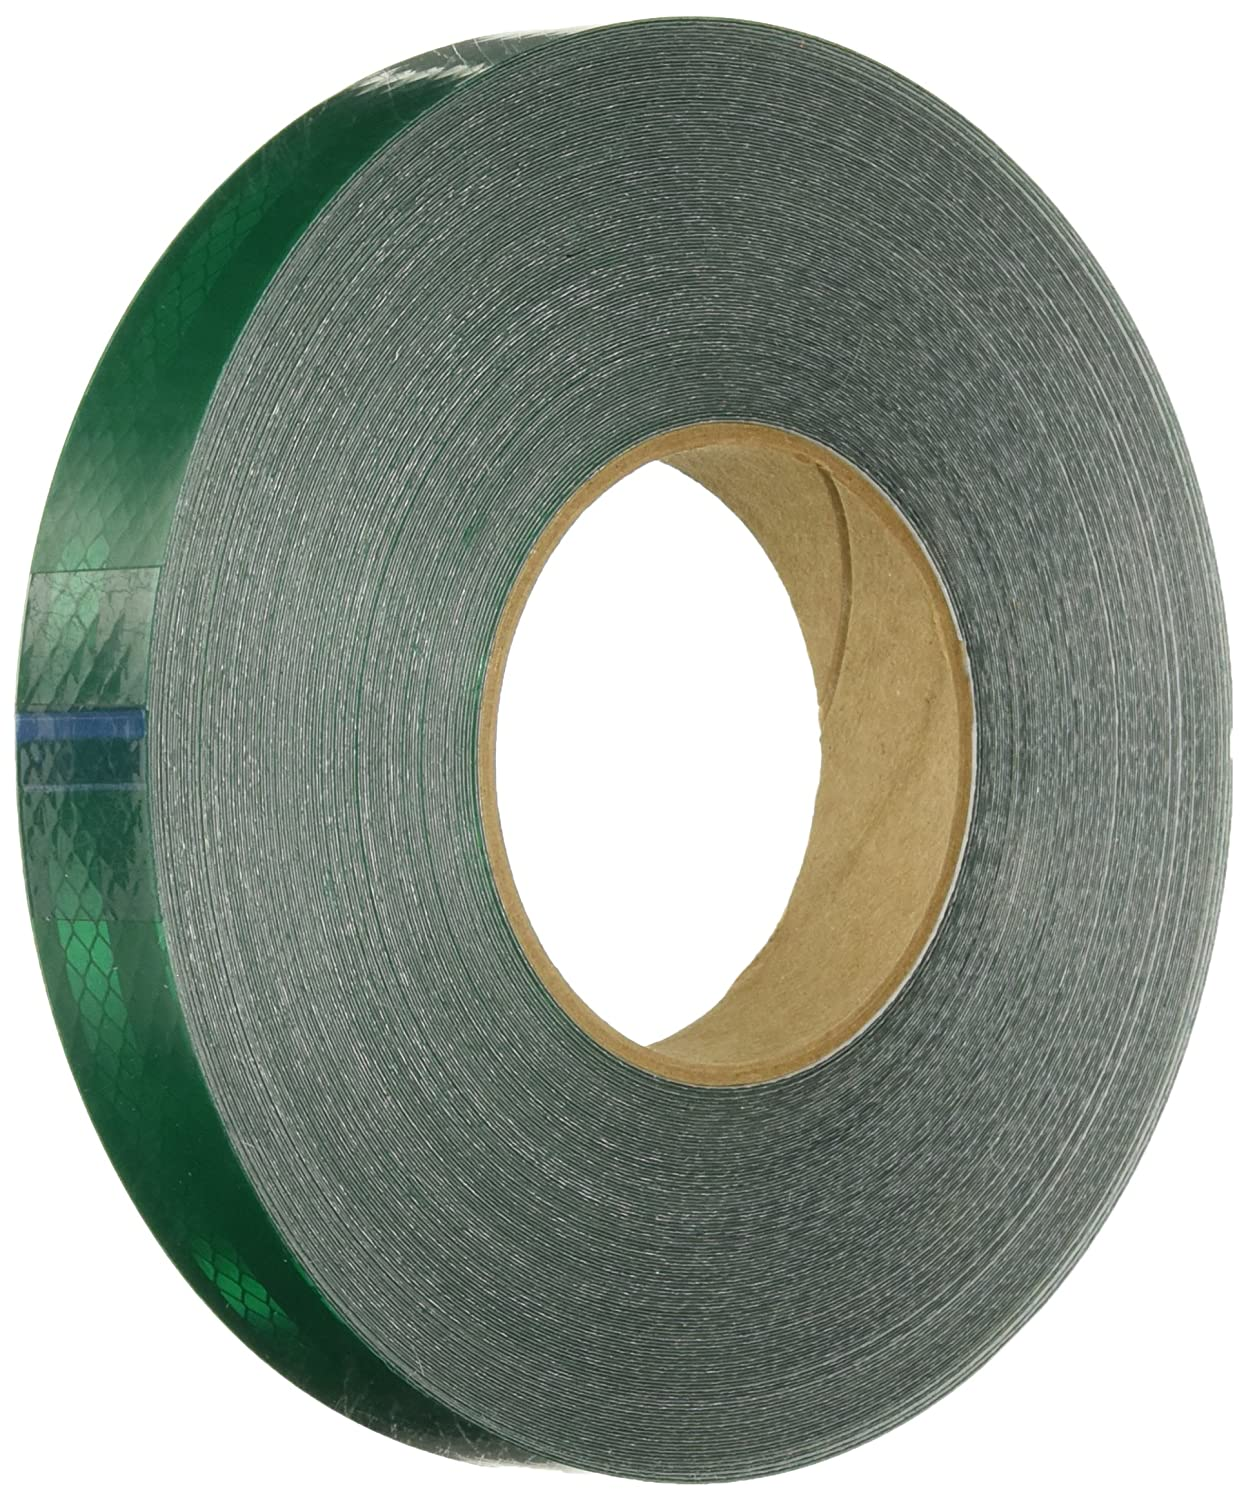 "3M 3437 Green Micro Prismatic Sheeting Reflective Tape, 1"" x 5 yd (1 Roll)"